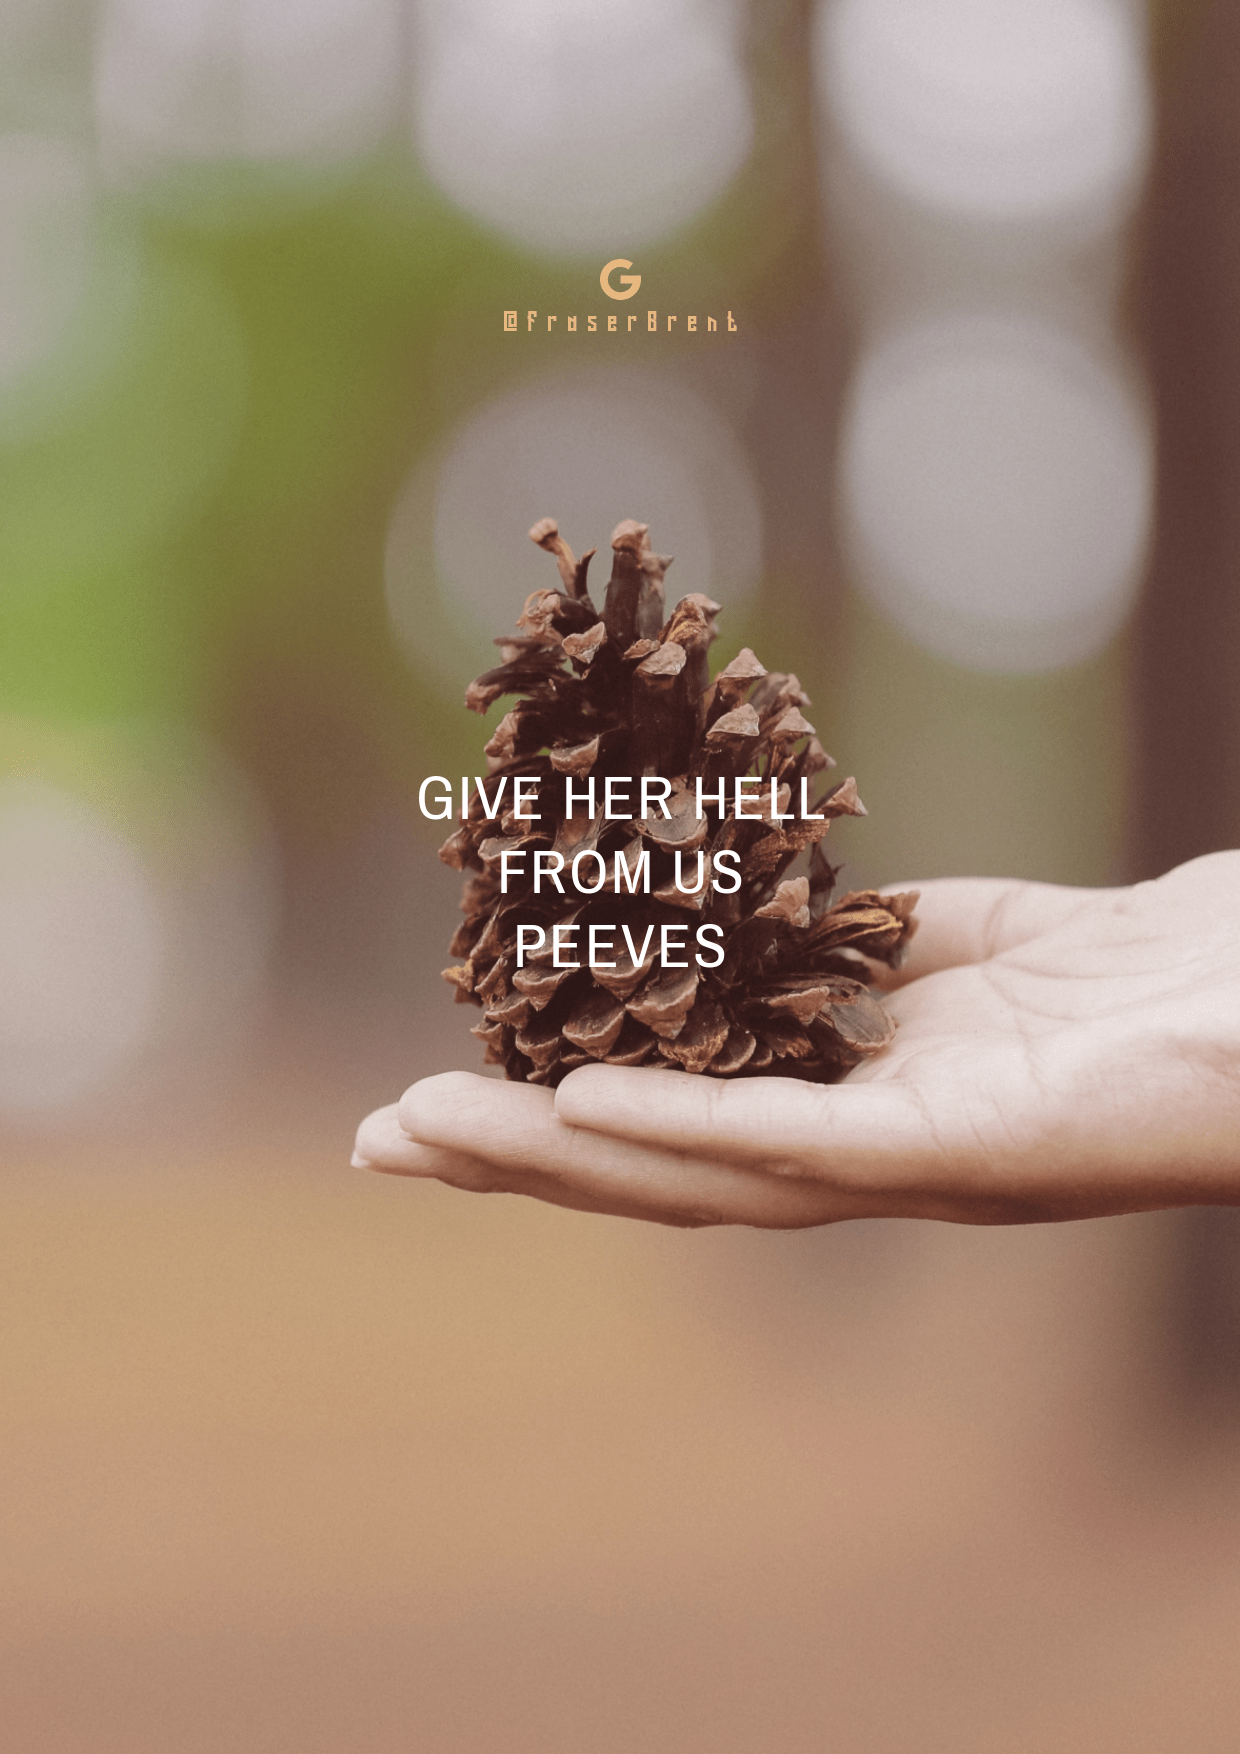 Finger,                Chocolate,                Font,                Computer,                Wallpaper,                Pollinator,                Network,                Social,                Butterfly,                And,                Insecttype,                G,                Search,                 Free Image